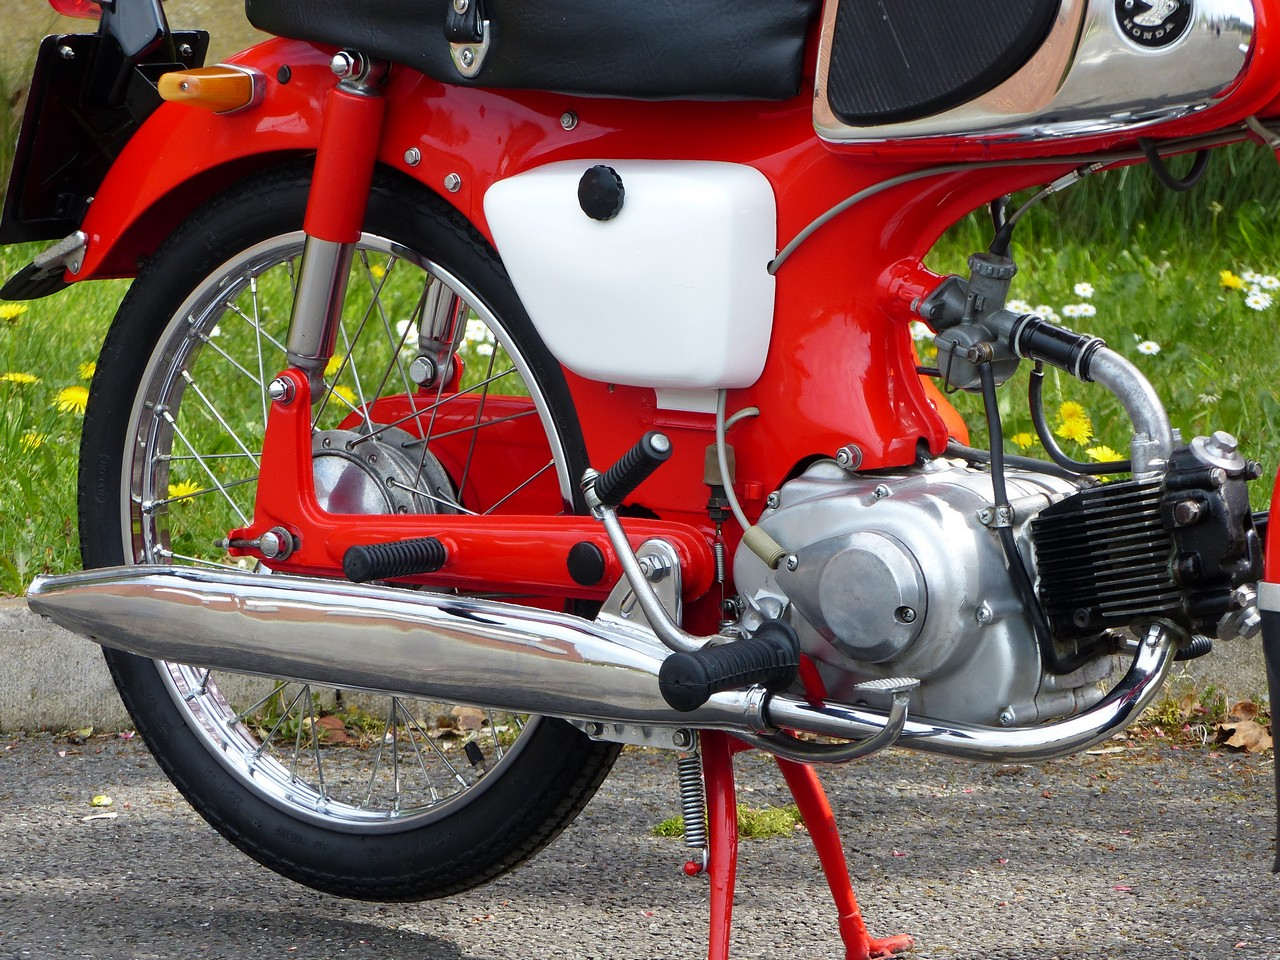 Steve Carthy Motorcycles :: Classic Motorcycles For Sale :: Honda C110 Sports Cub 49cc 1962